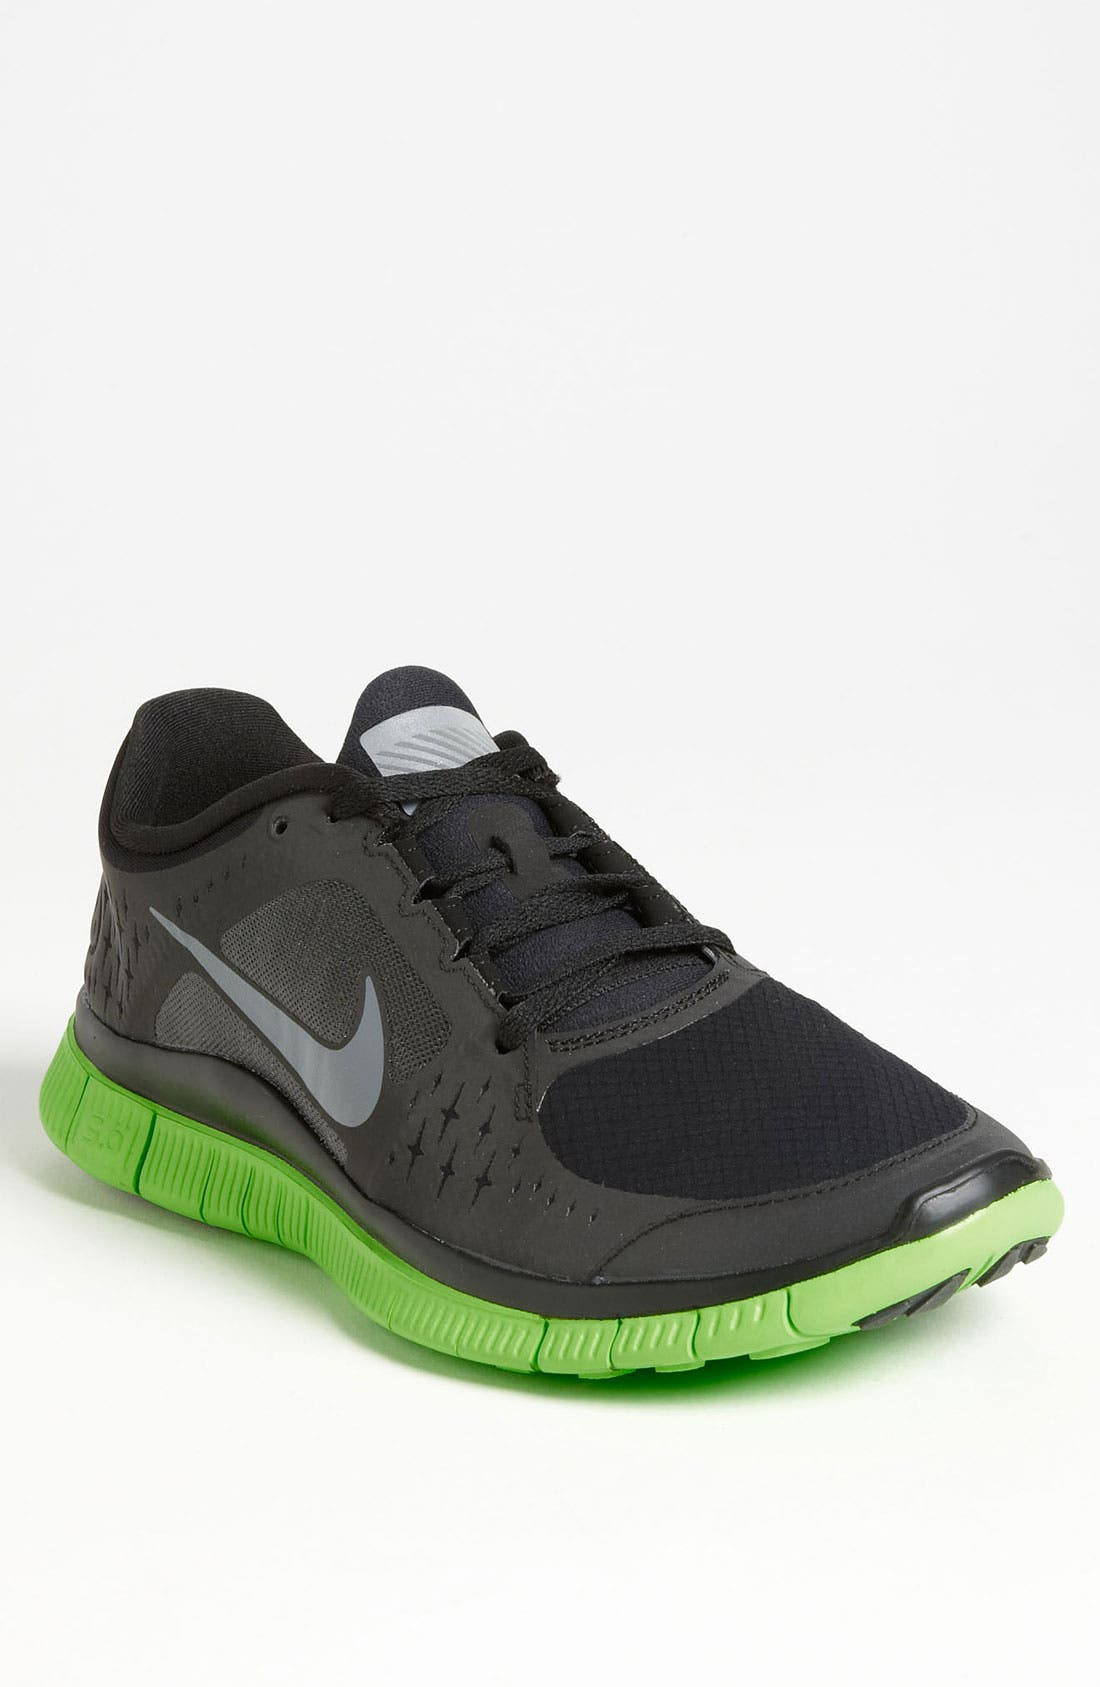 Main Image - Nike 'Free Run+ 3' Running Shoe (Men)